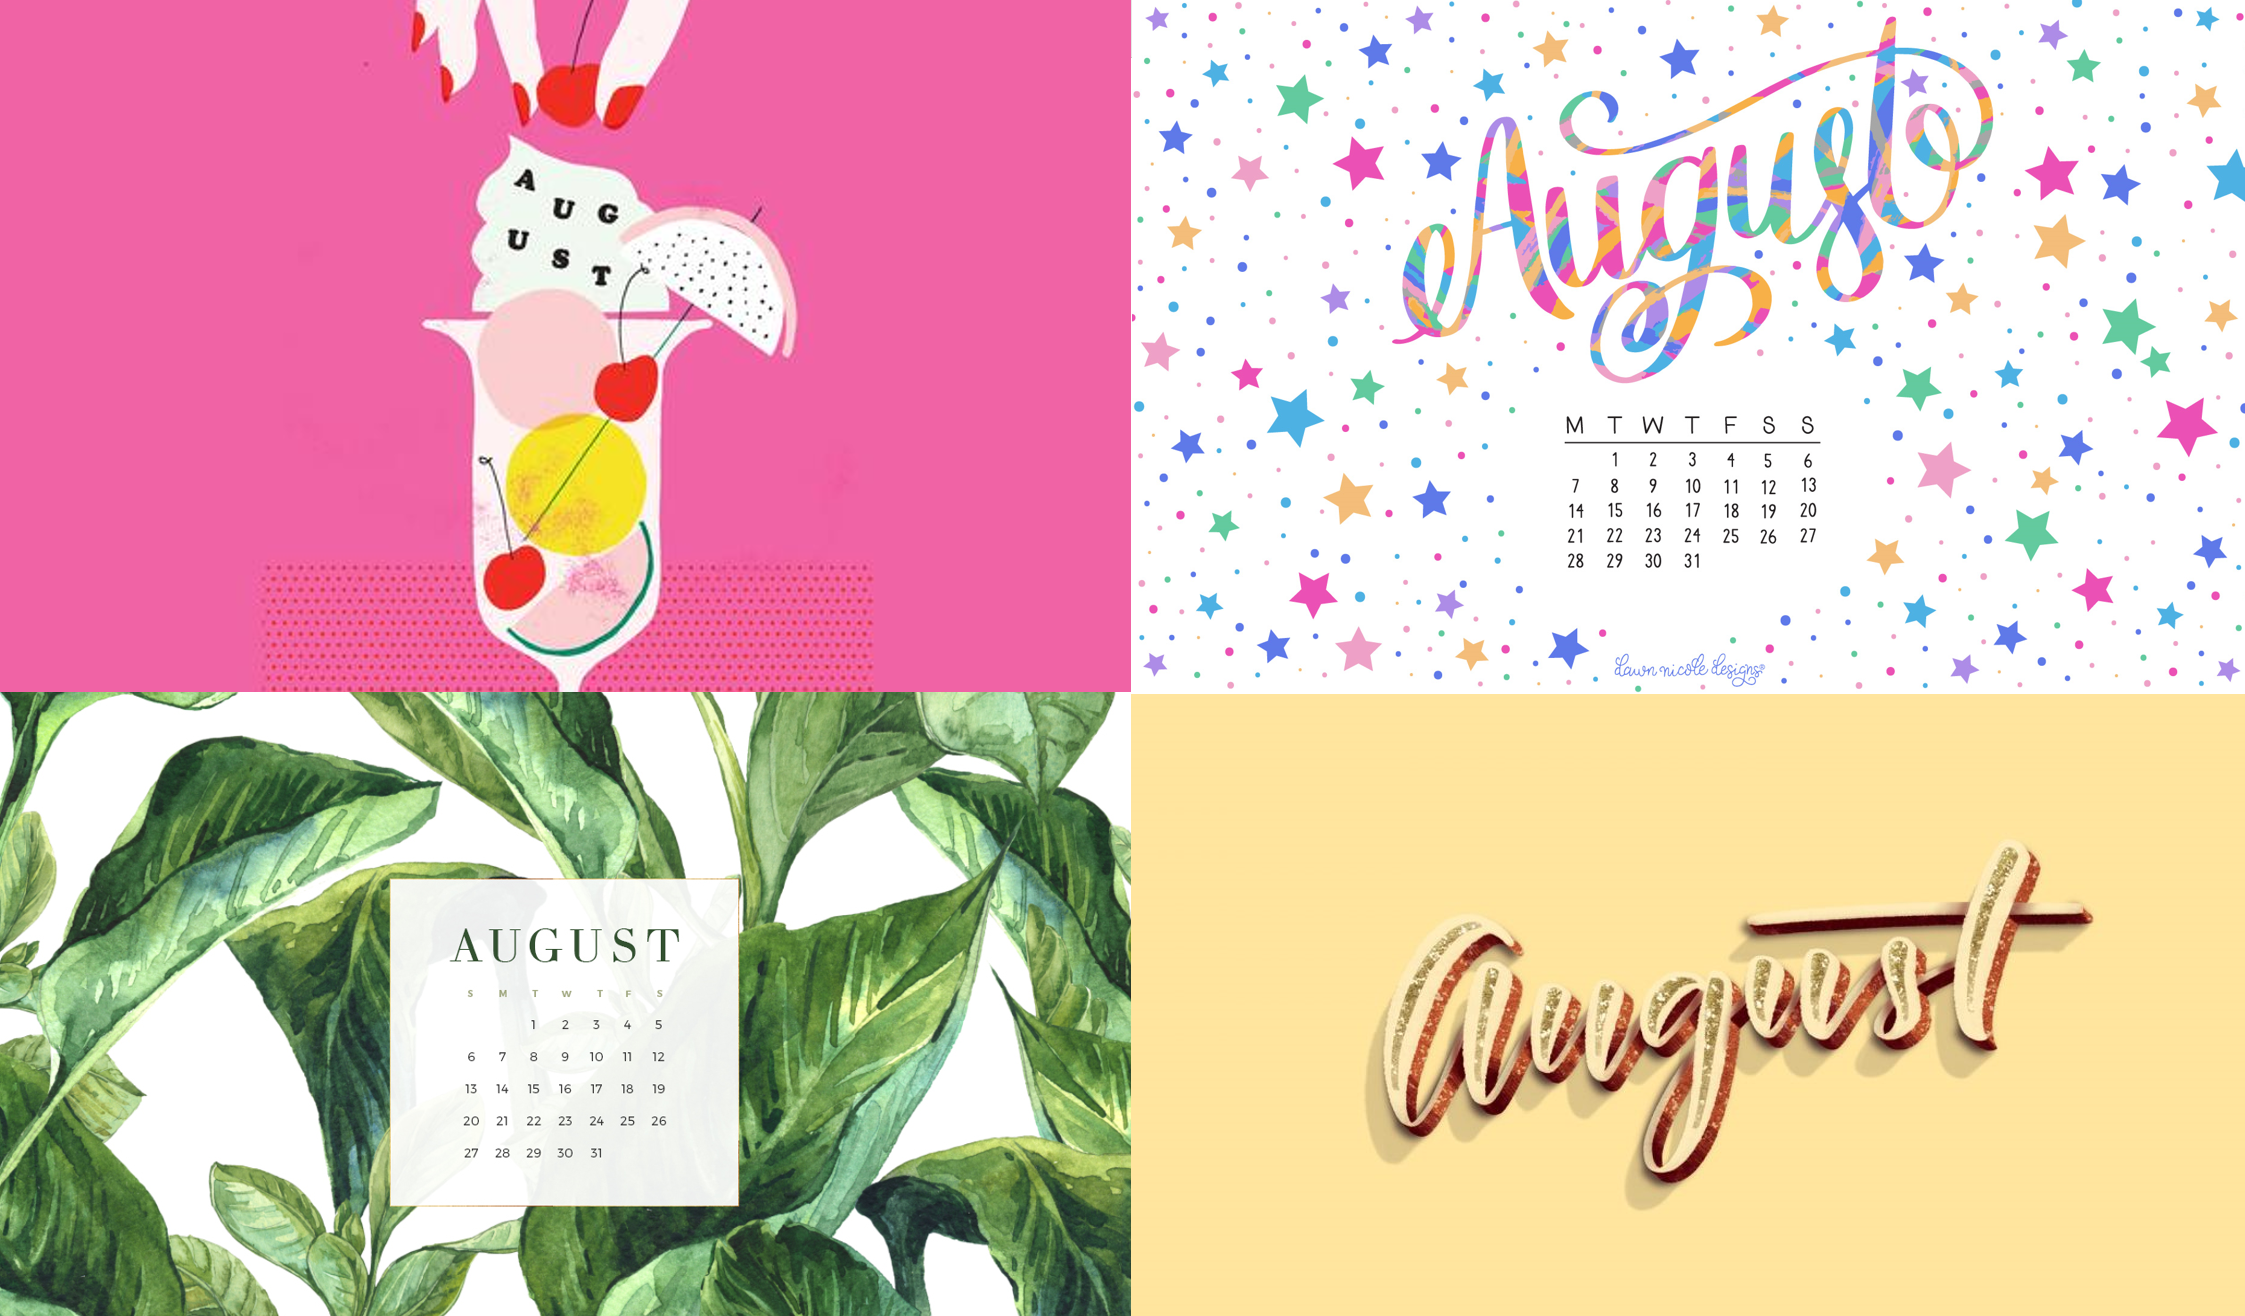 Desktop Calendar Wallpaper With Reminder : August calendar wallpaper roundup blazers and blue